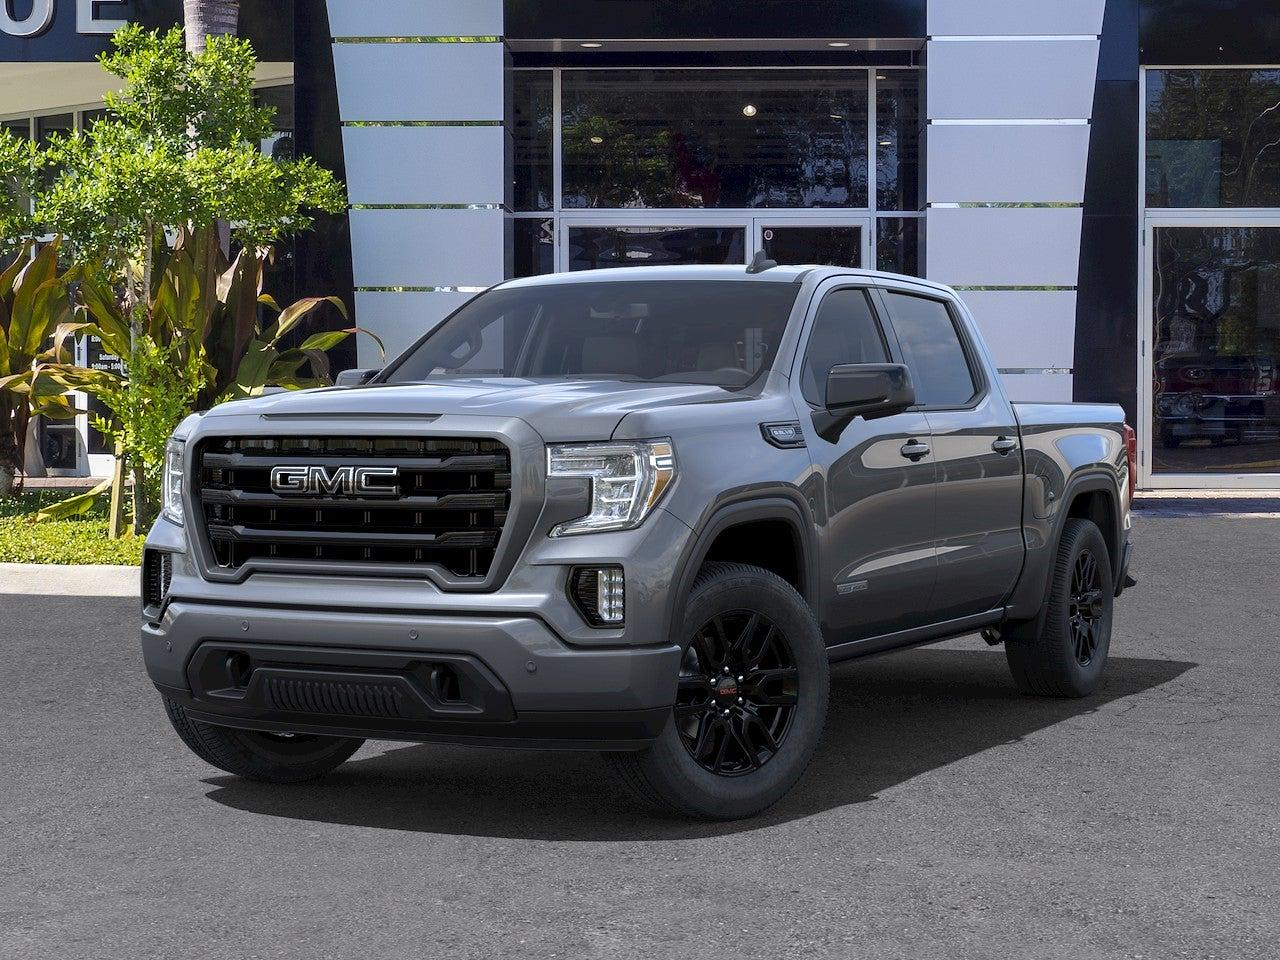 2021 GMC Sierra 1500 Crew Cab 4x2, Pickup #T21273 - photo 8